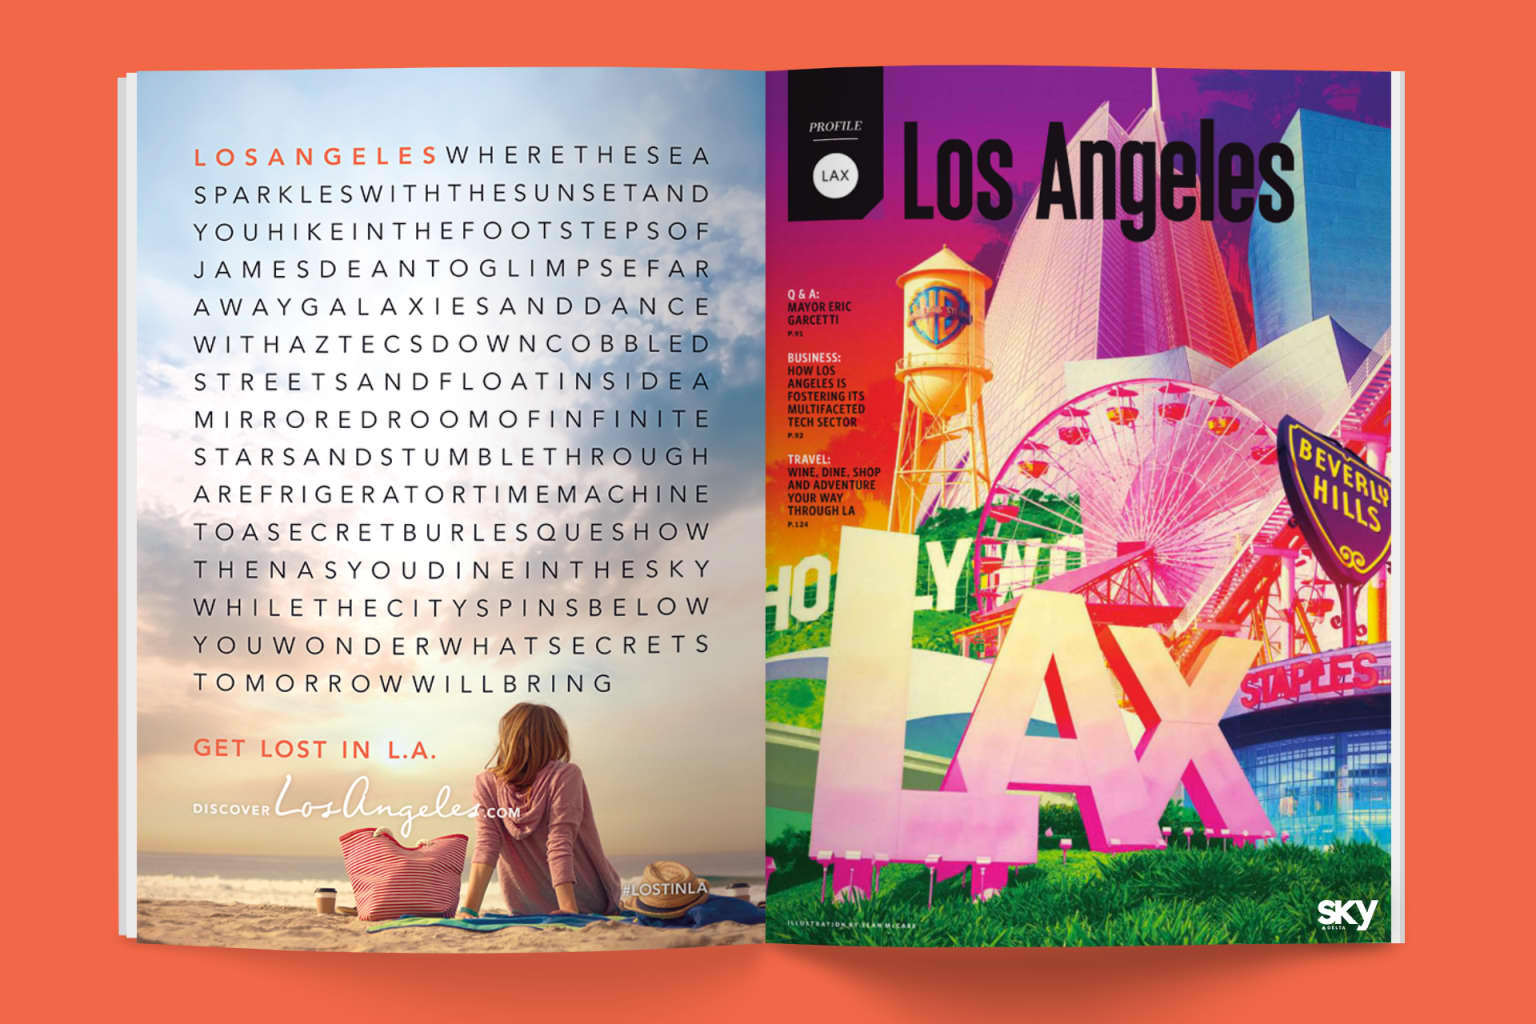 L.A. Tourism — Get Lost in L.A.